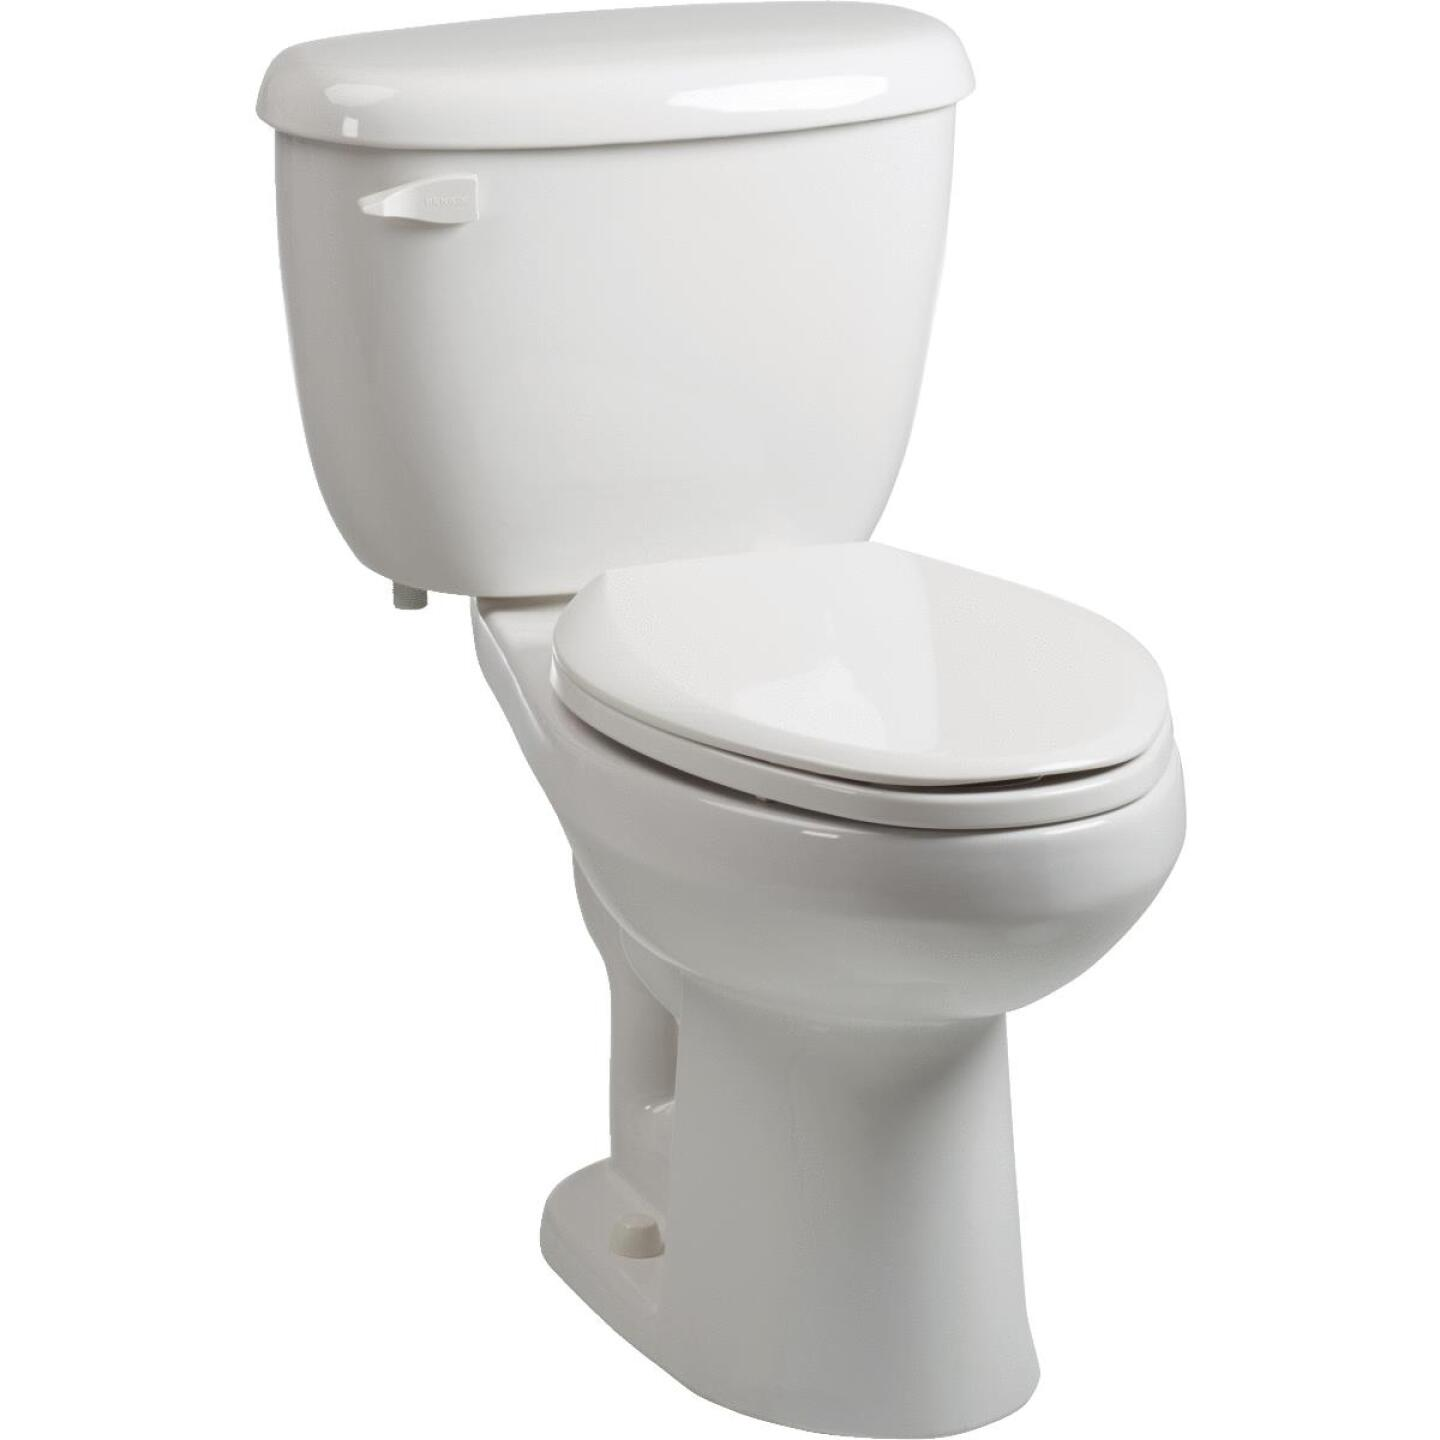 Briggs ComfortFit White Elongated Bowl 1.28 GPF Toilet Express Image 1